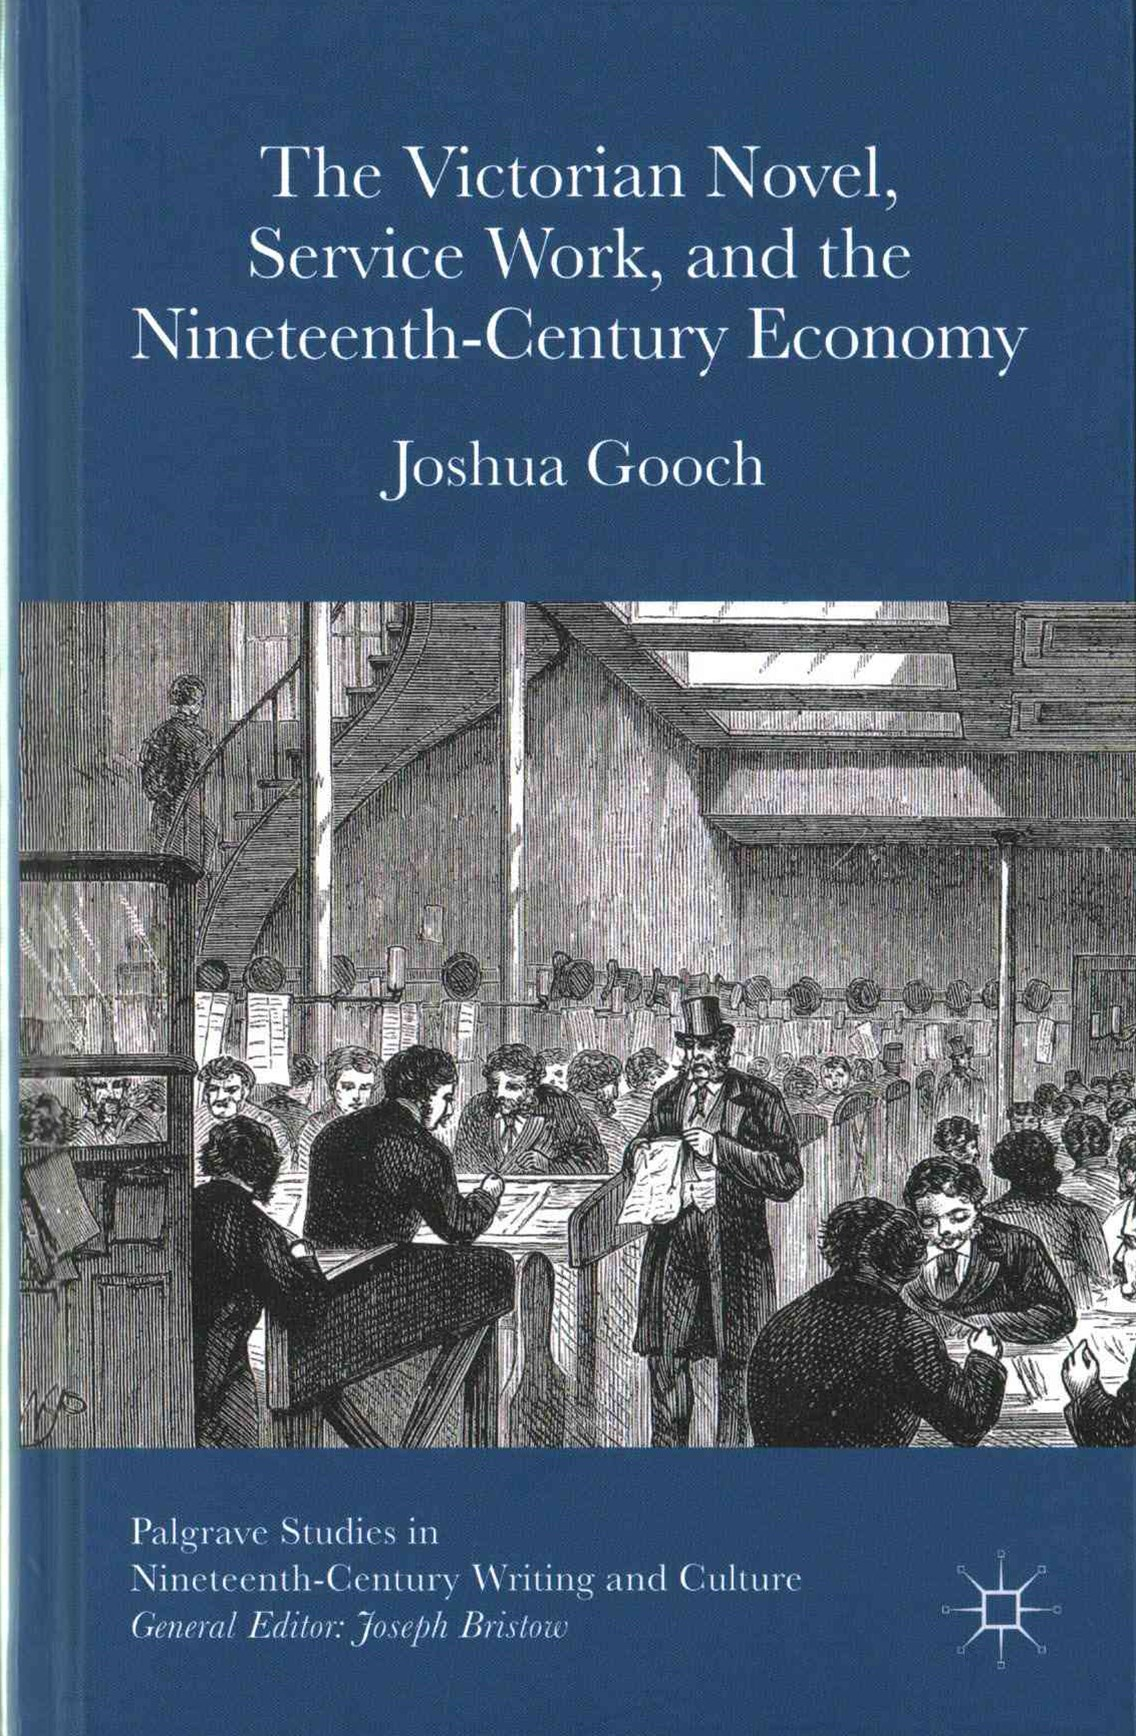 The Victorian Novel, Service Work, and the Nineteenth-Century Economy